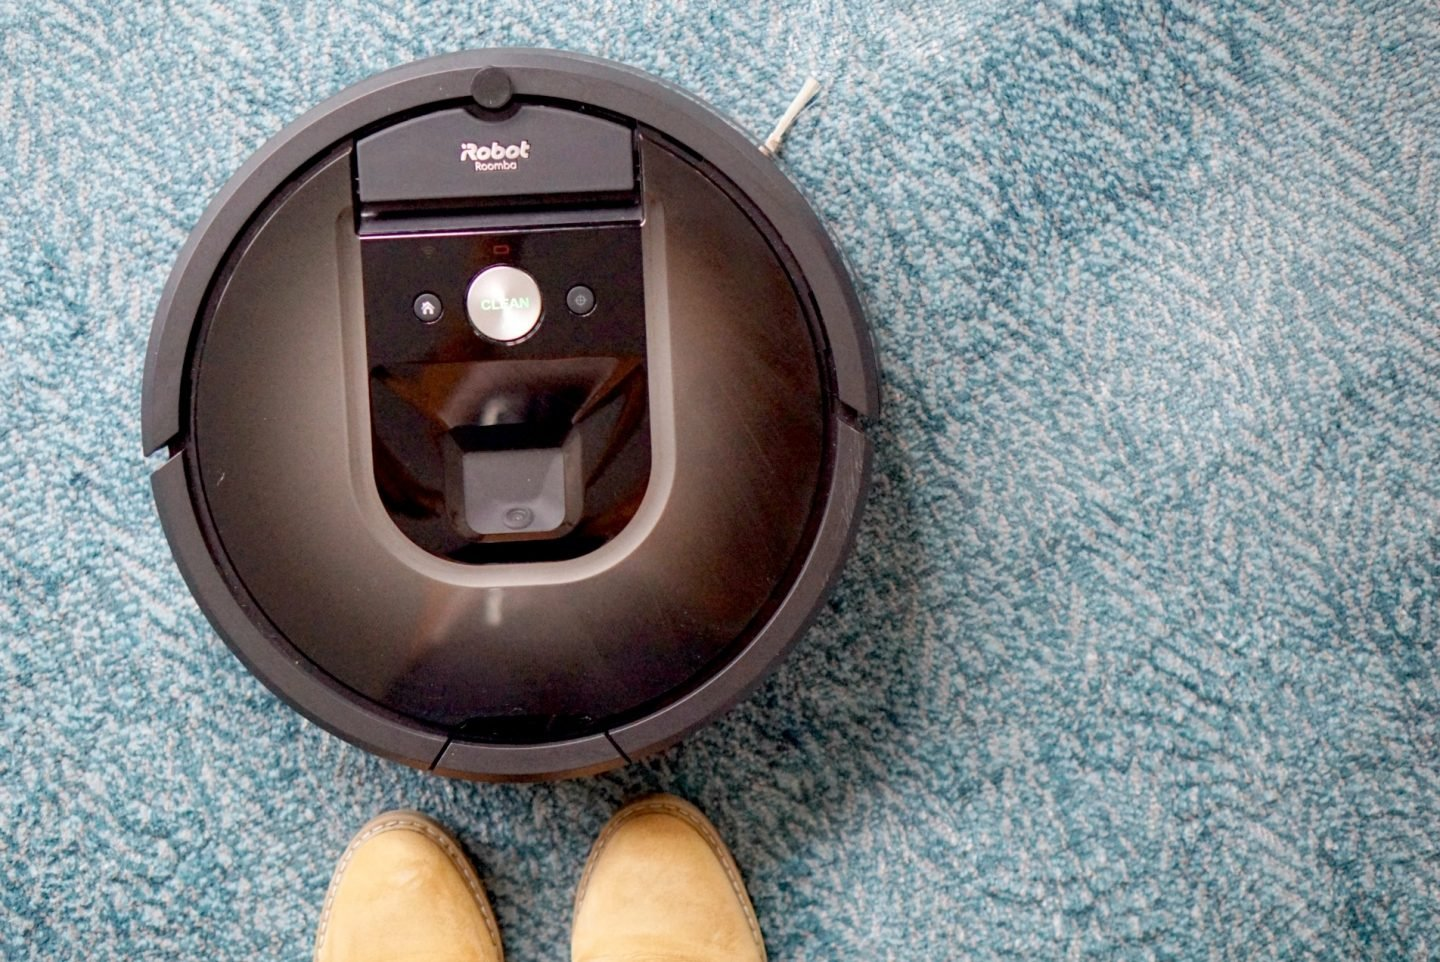 Are Robot Vacuums Any Good The iRobot Roomba 980